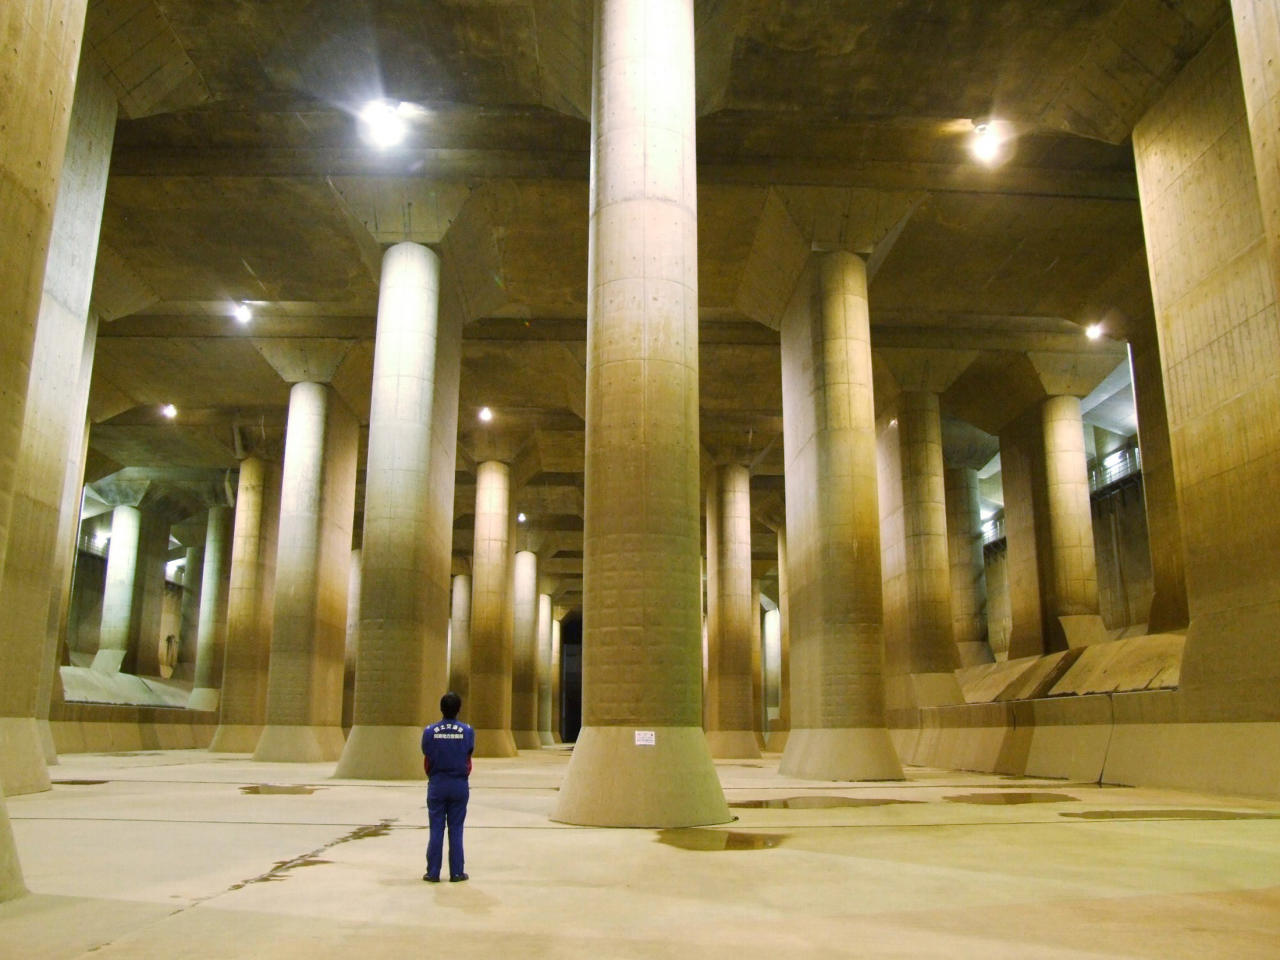 "The pressure-controlled water tank at the  Metropolitan Area Outer Underground Discharge Channel in Kusakabe, north  of Tokyo. The facility, which is  believed to be one of the largest facilities in the world, is composed of giant concrete containment  silos (65m tall, 32m wide), connected by 3.97 miles of  underground tunnels 50m beneath the surface as well as a large water  tank called the ""Underground Temple"" which is 25.4m tall, with a length  of 177m and 78m wide, with 59 concrete pillars. <br><br>(Photo: REUTERS/Ministry of  Land, Infrastructure, Transport and Tourism-Edogawa River Office/Handout)"